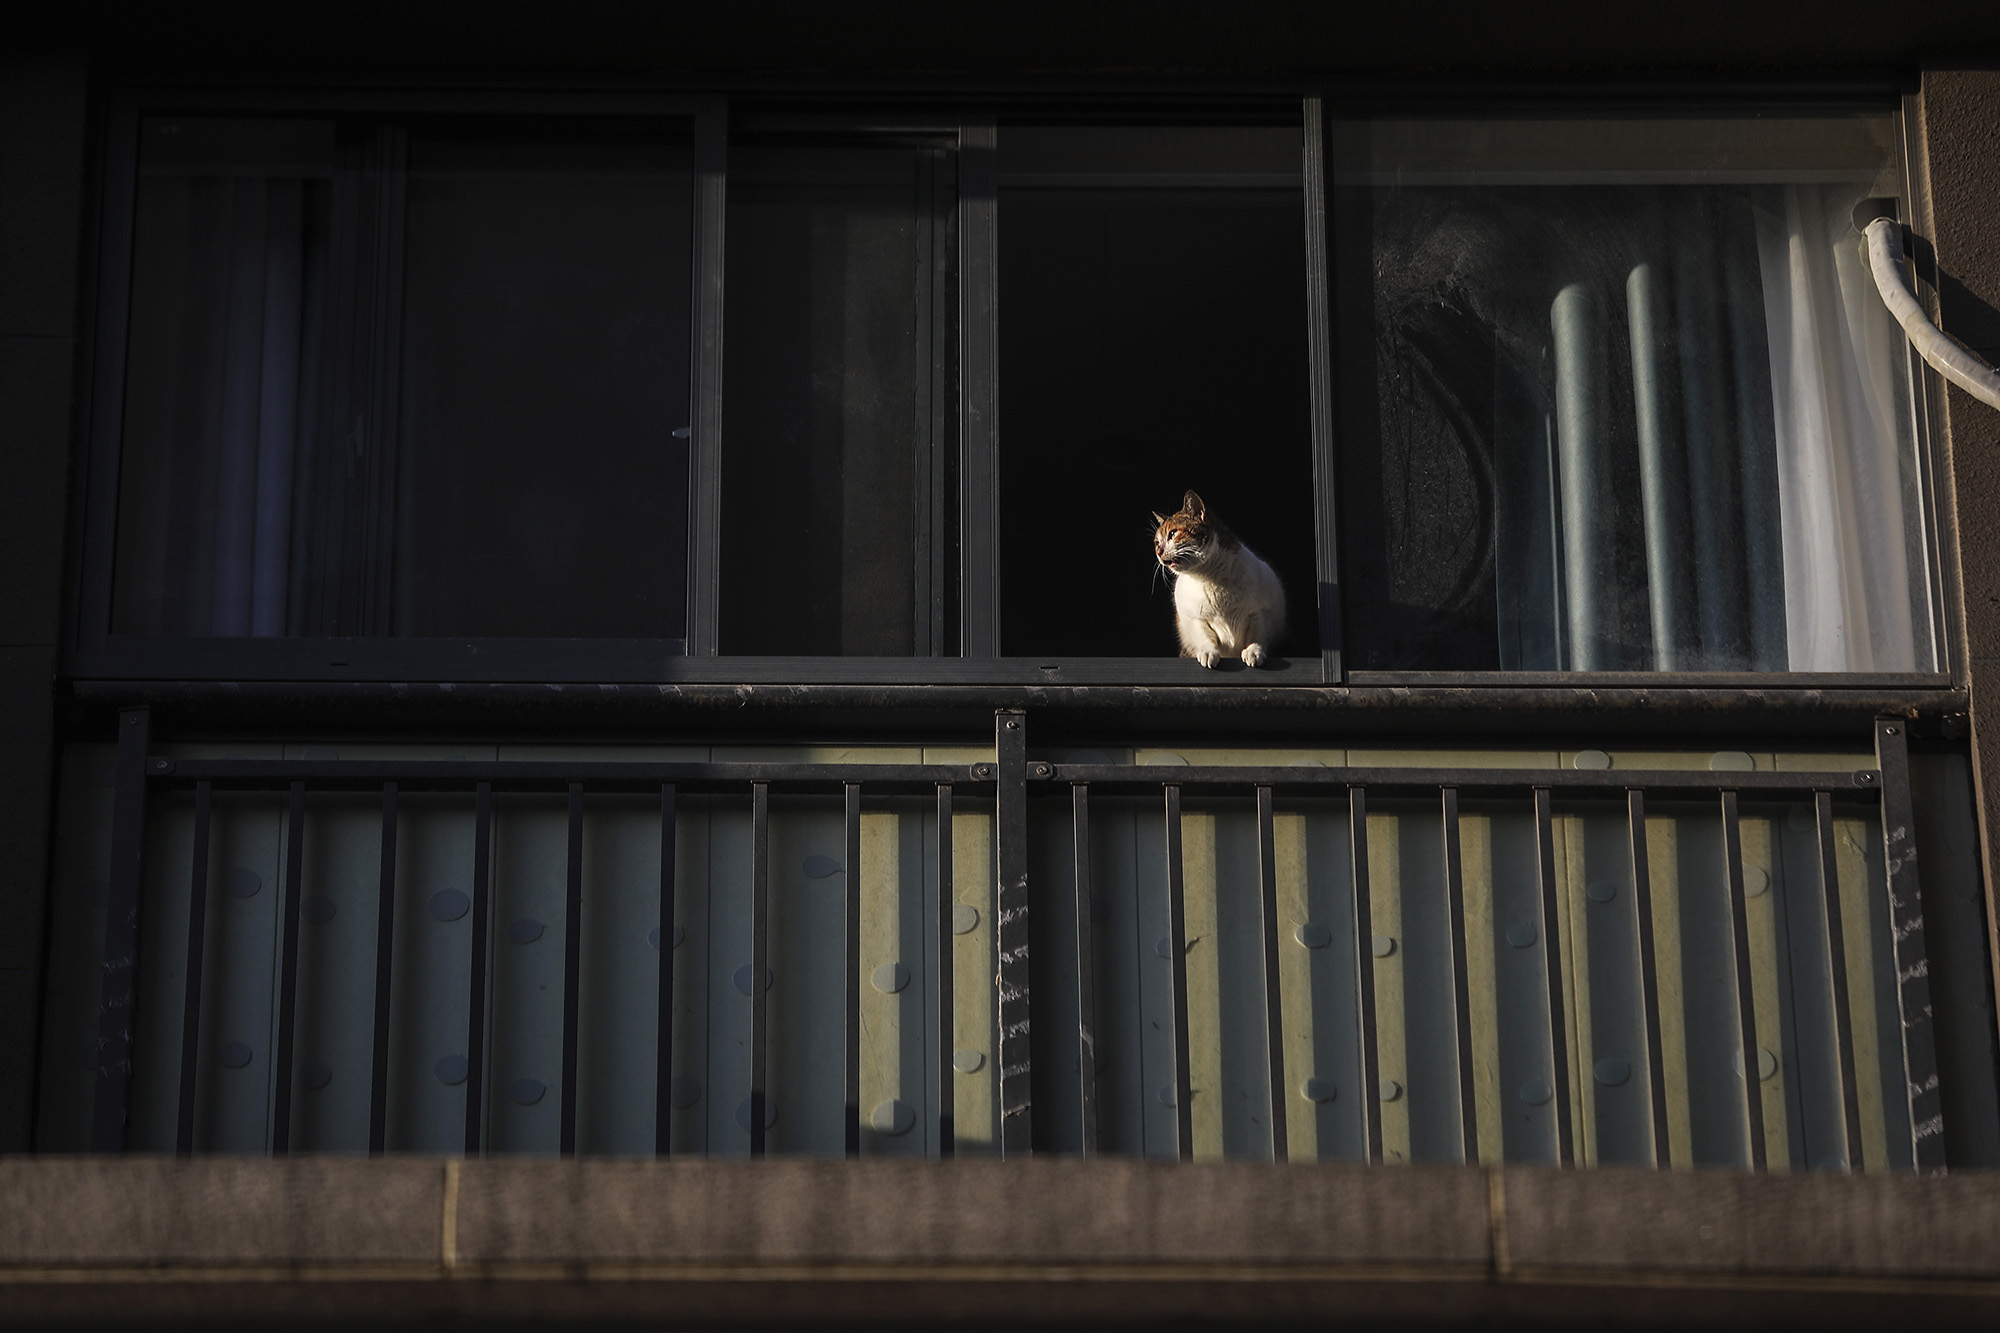 WUHAN, CHINA - FEBRUARY 16: (CHINA OUT)A cat lies on the windowsill at Optical Valley on February 16, 2020 in Wuhan, Hubei province, China. Flights, trains and public transport including buses, subway and ferry services have been closed for 25 days. The number of those who have died from the Wuhan coronavirus, known as 2019-nCoV, in China climbed to 1667. (Photo by Getty Images)